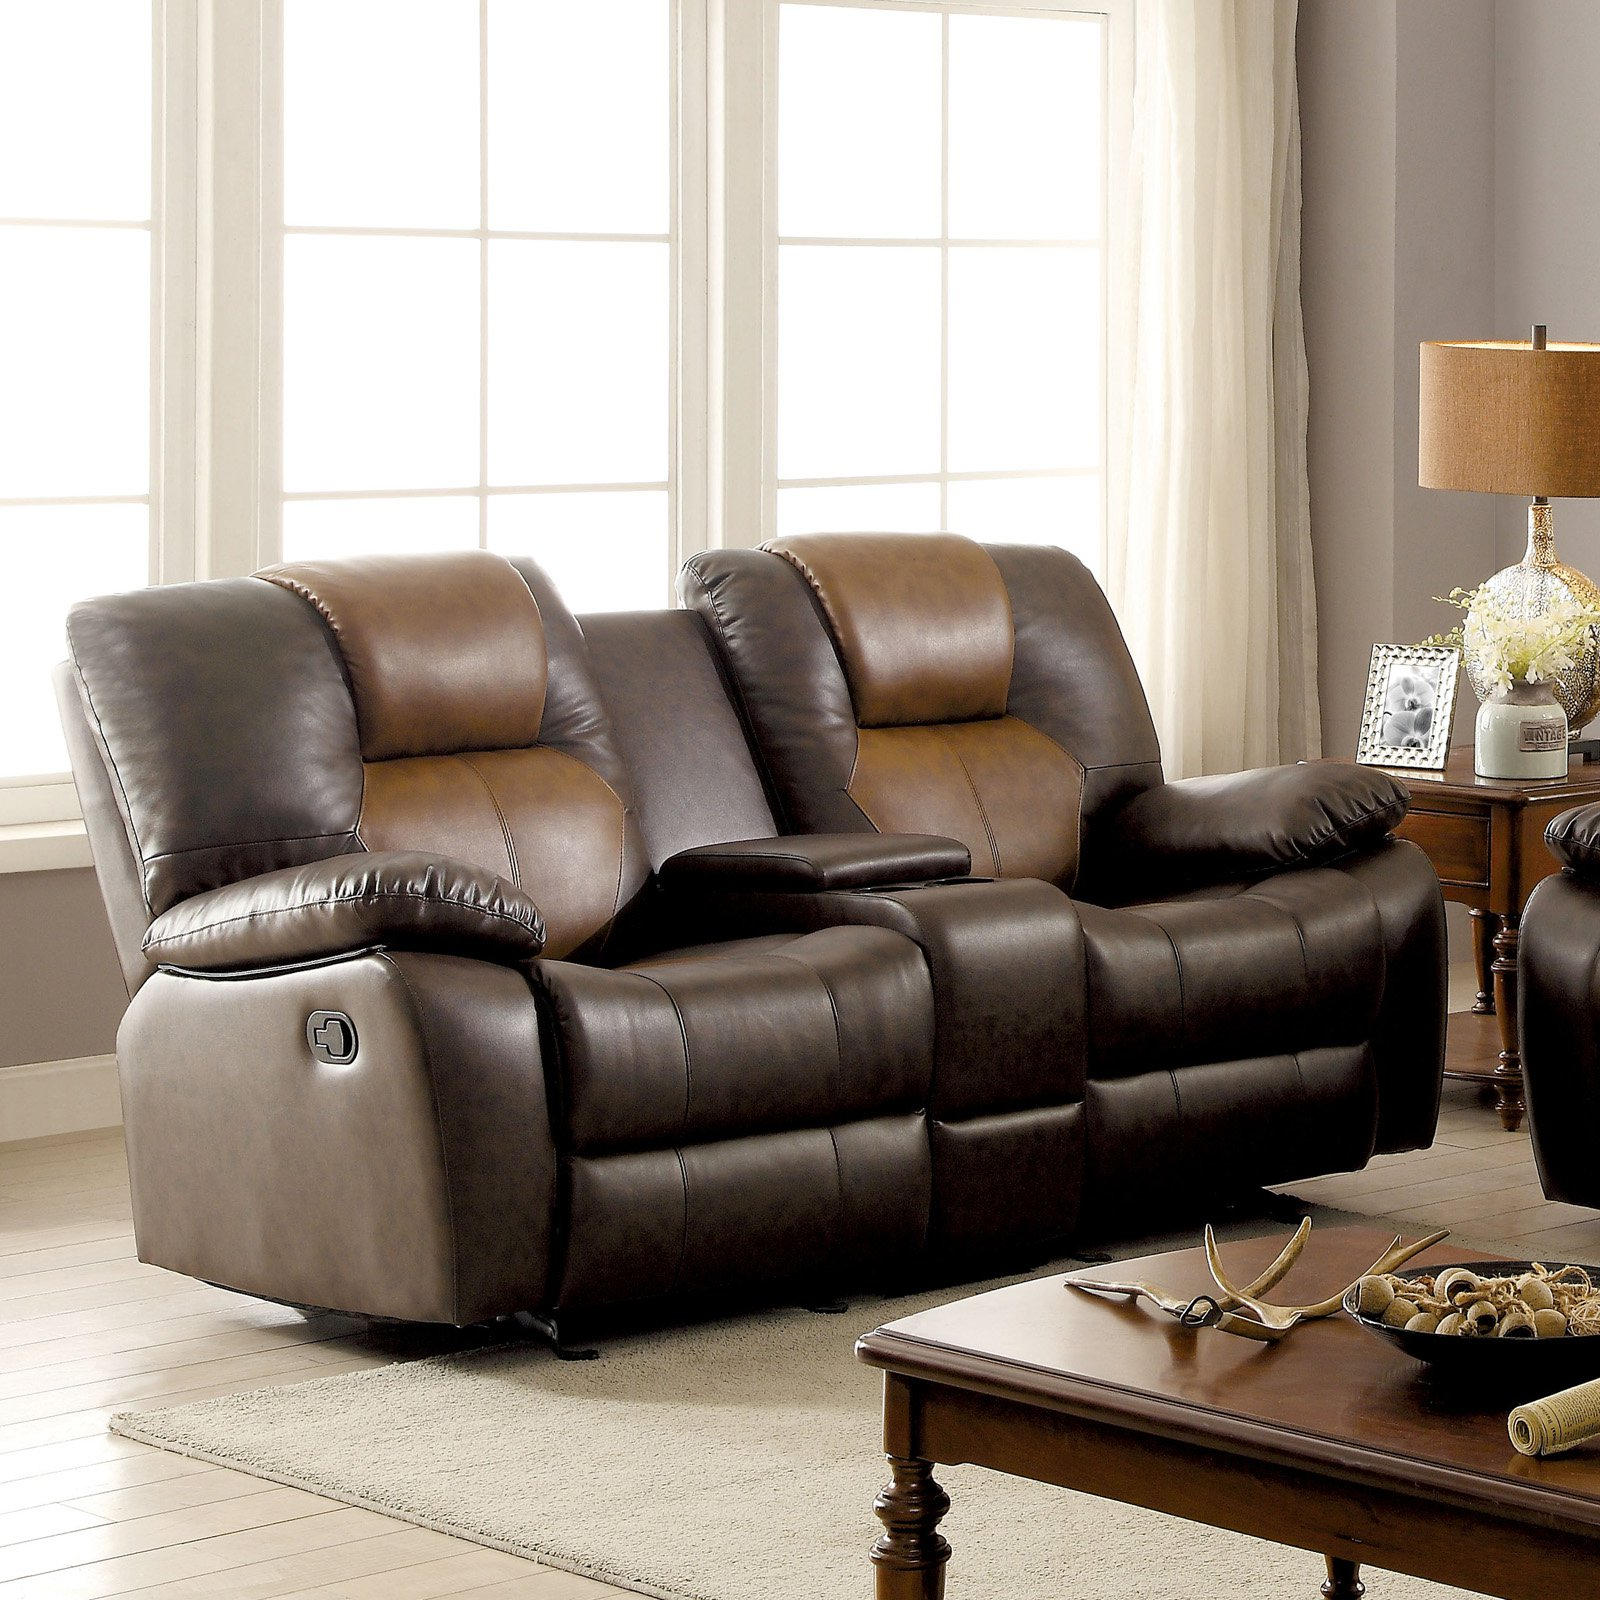 Furniture of America Orianne Transitional Style Leatherette Recliner Loveseat